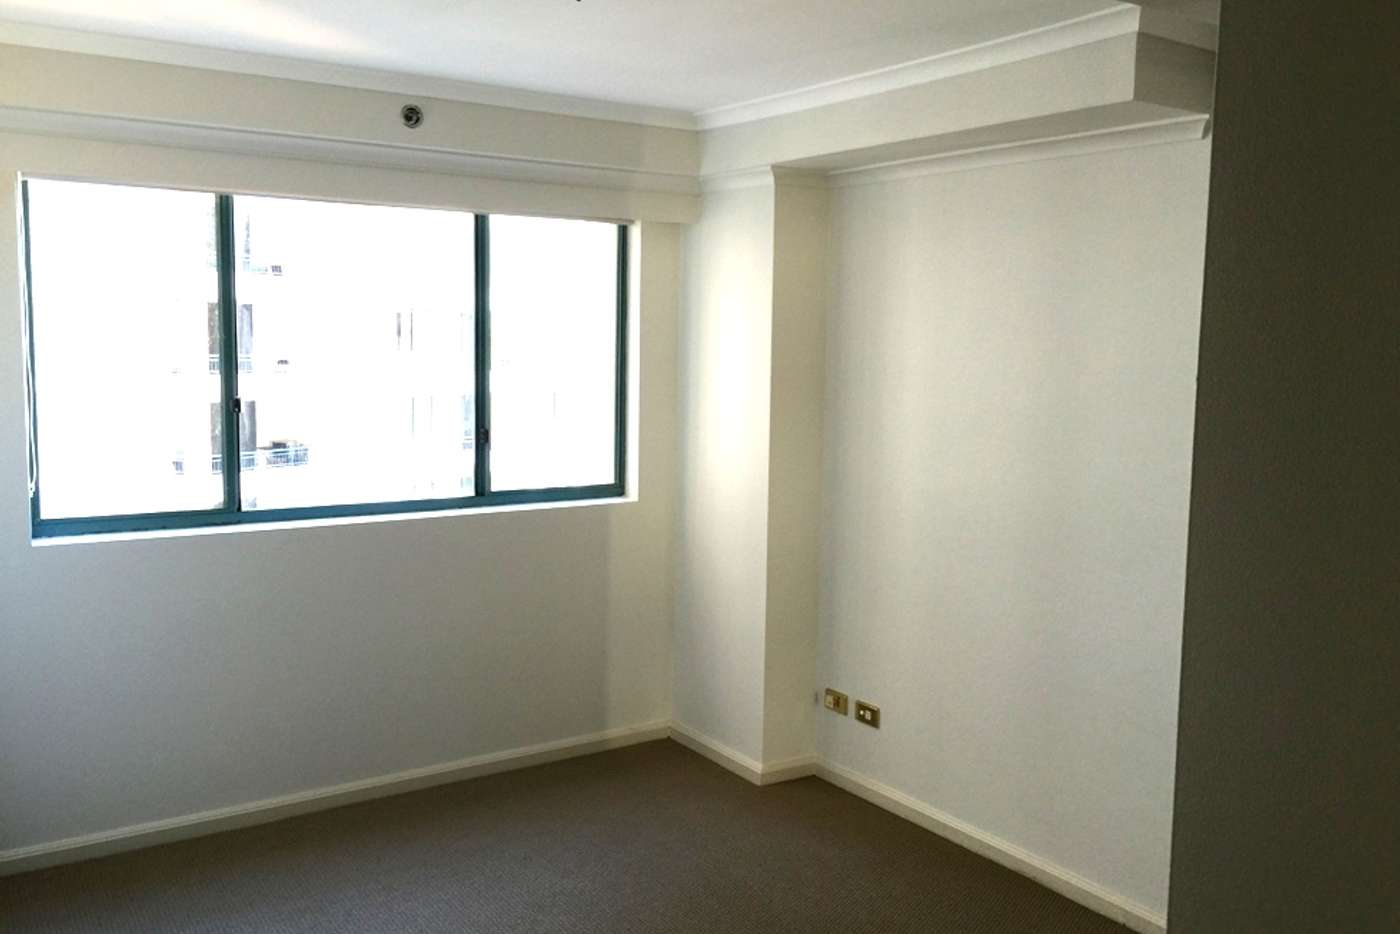 Sixth view of Homely apartment listing, 60/414 Pitt Street, Sydney NSW 2000